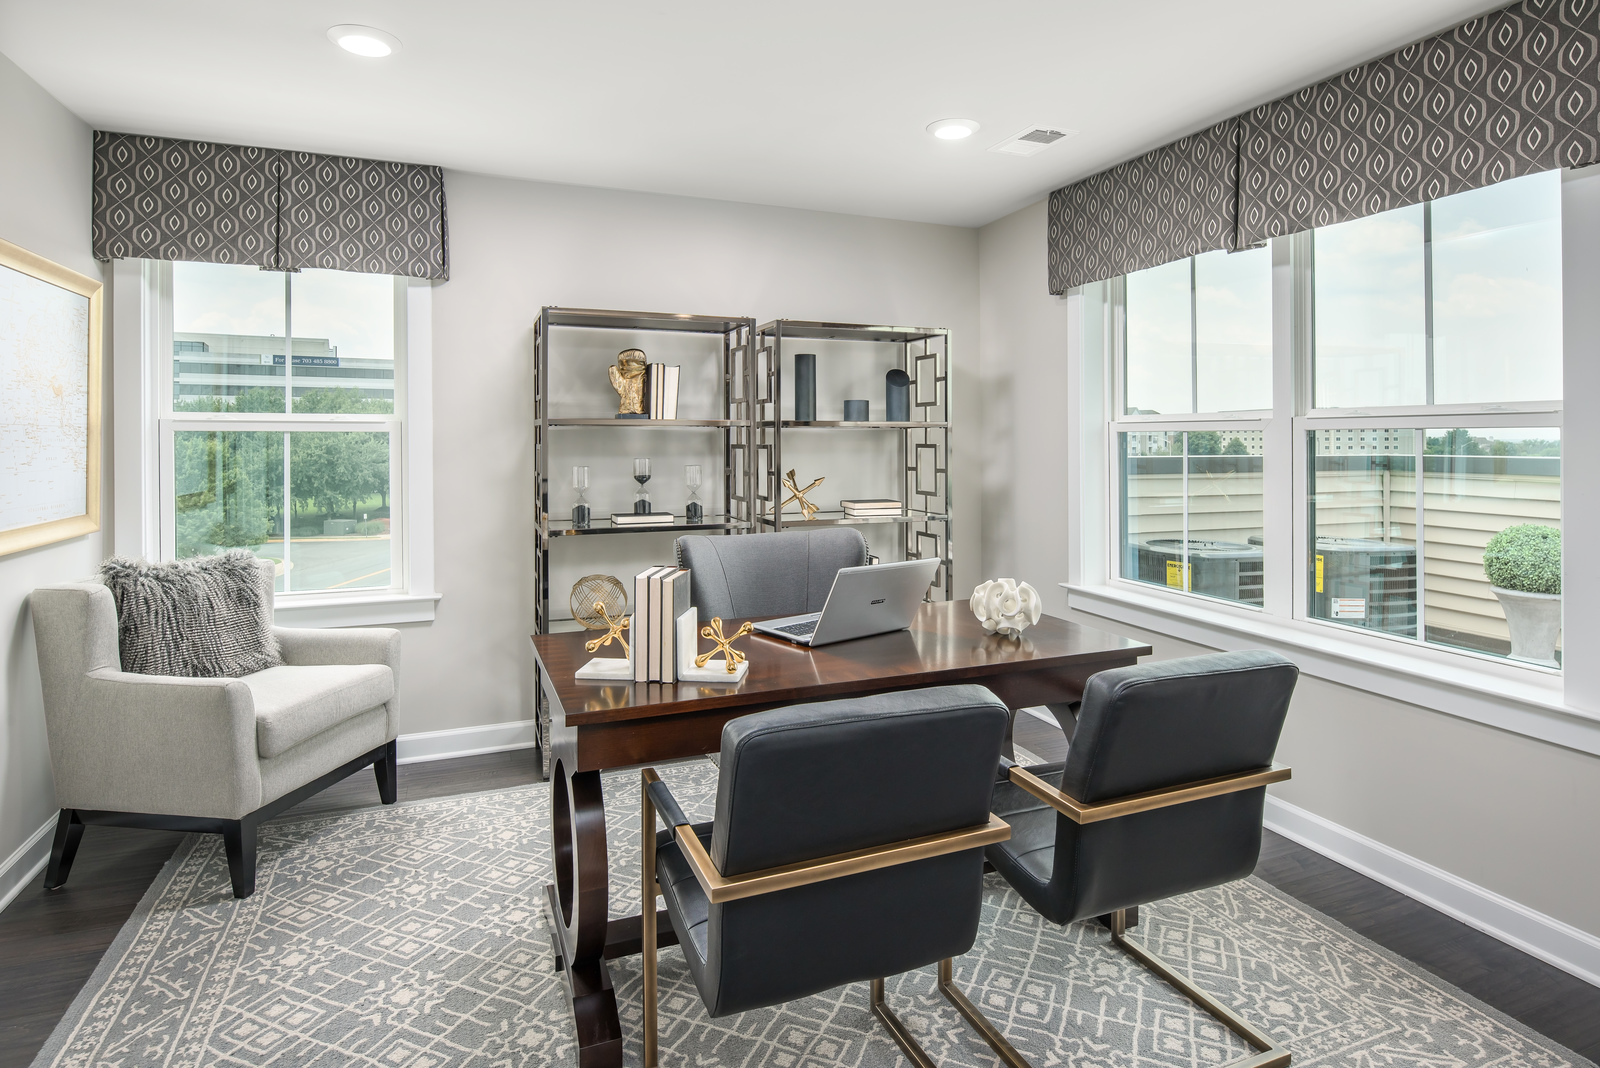 Our flexible floorplans offer rec rooms, studies, or extra bedrooms.